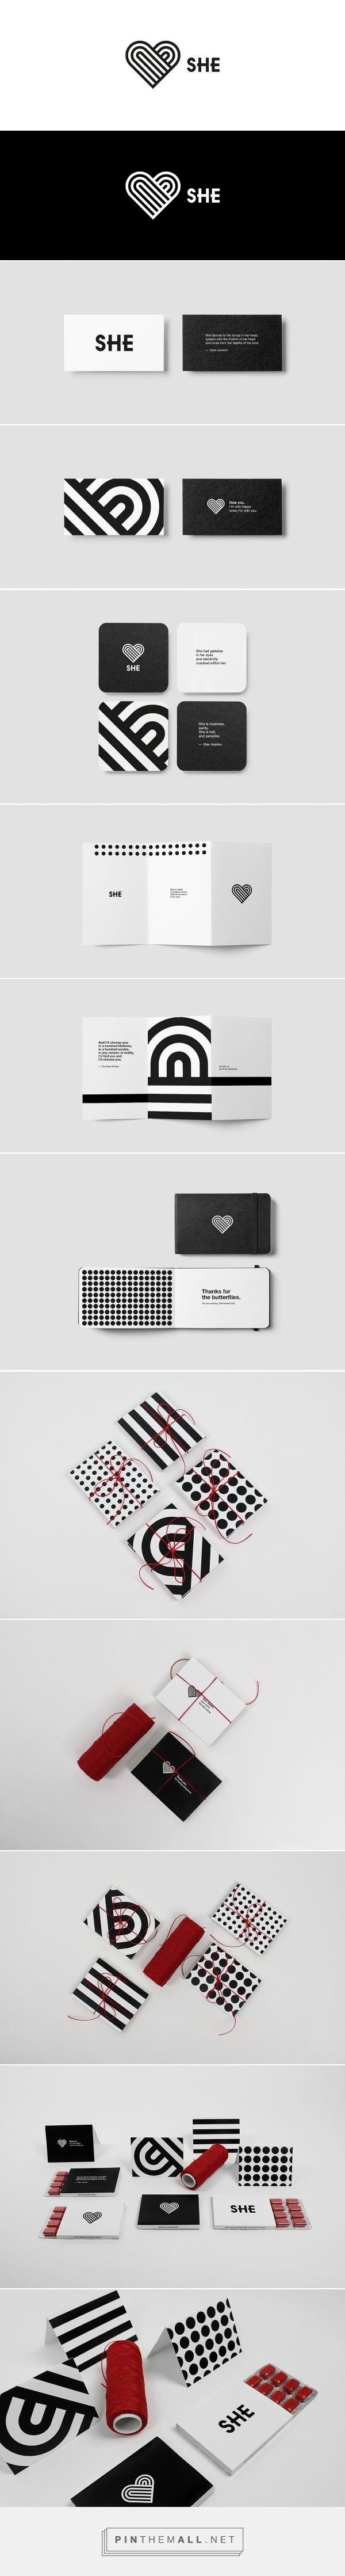 7 best name card images on Pinterest | Business cards, Chinese and ...